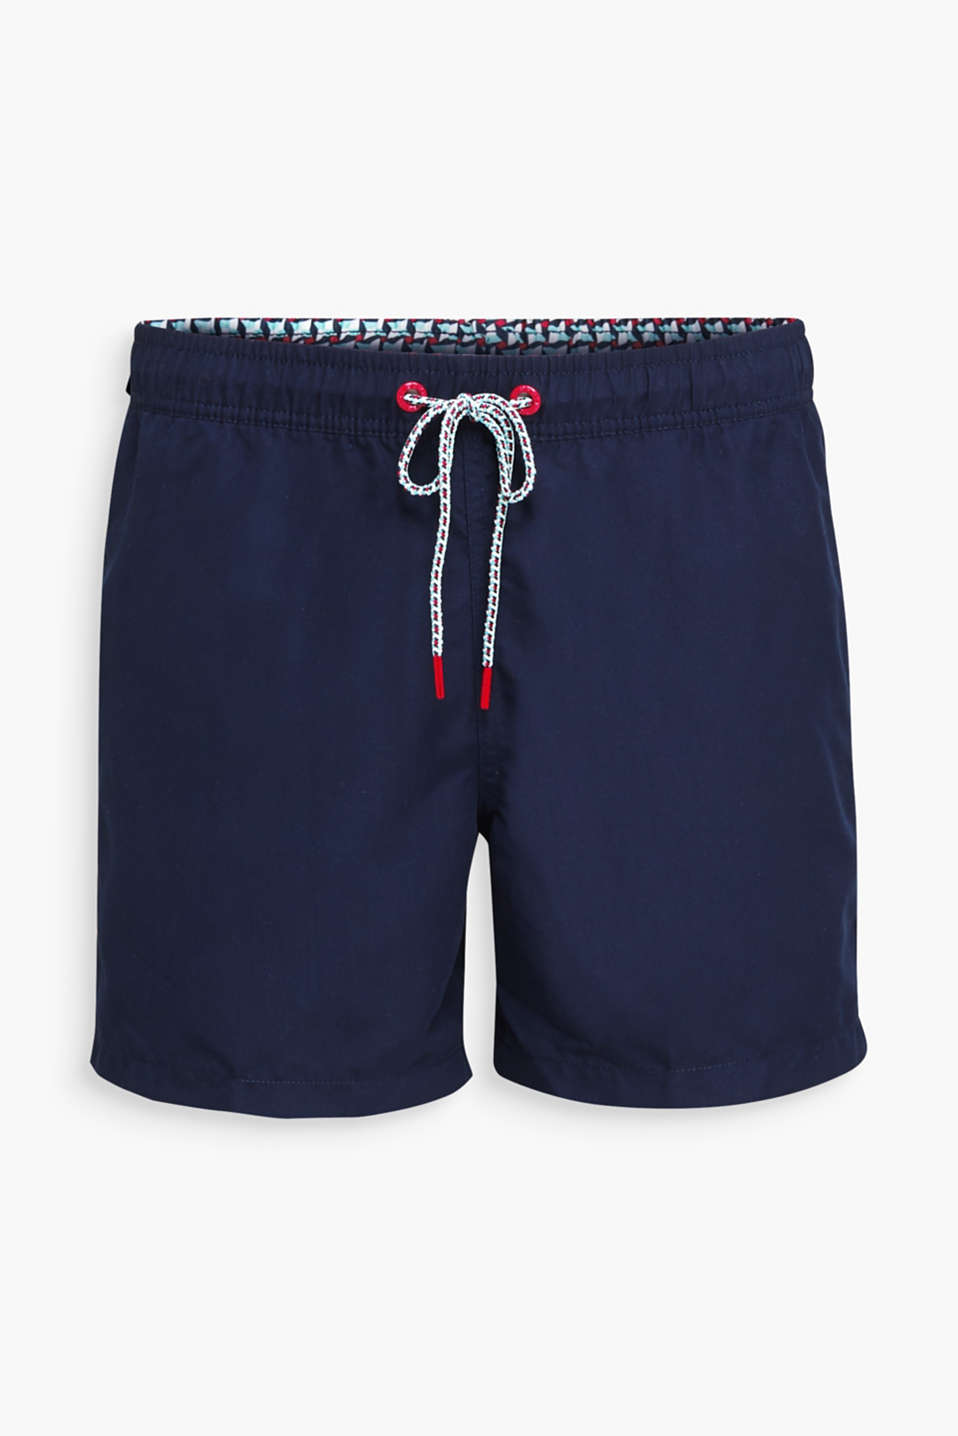 Swim shorts with print details, NAVY 2, detail image number 3